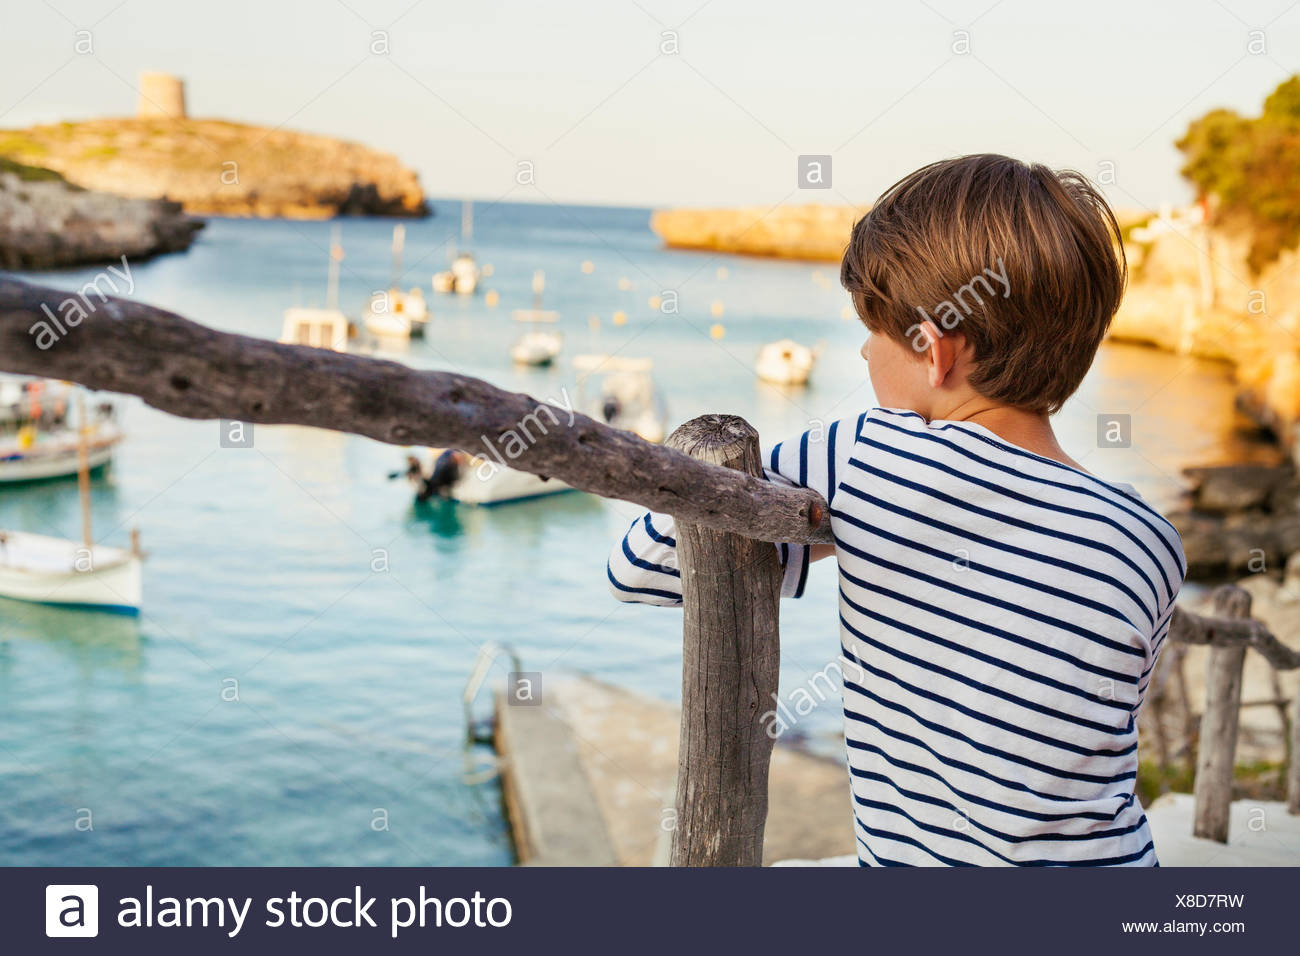 Spain, Menorca, Boy (6-7) looking at seaside view - Stock Image